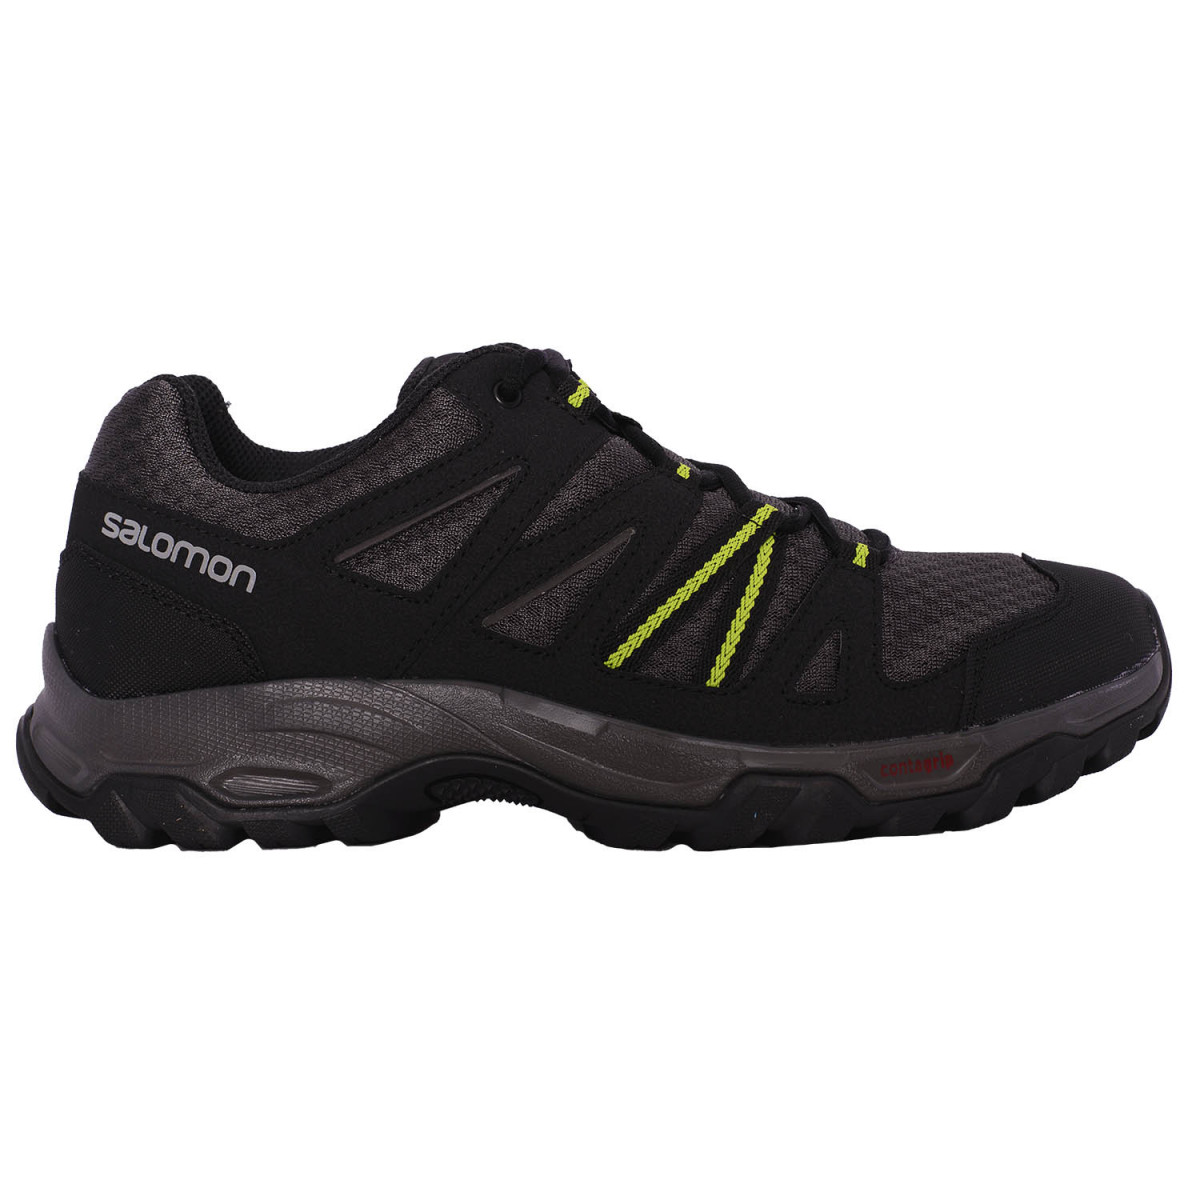 Zapatillas Salomon Redwood 2